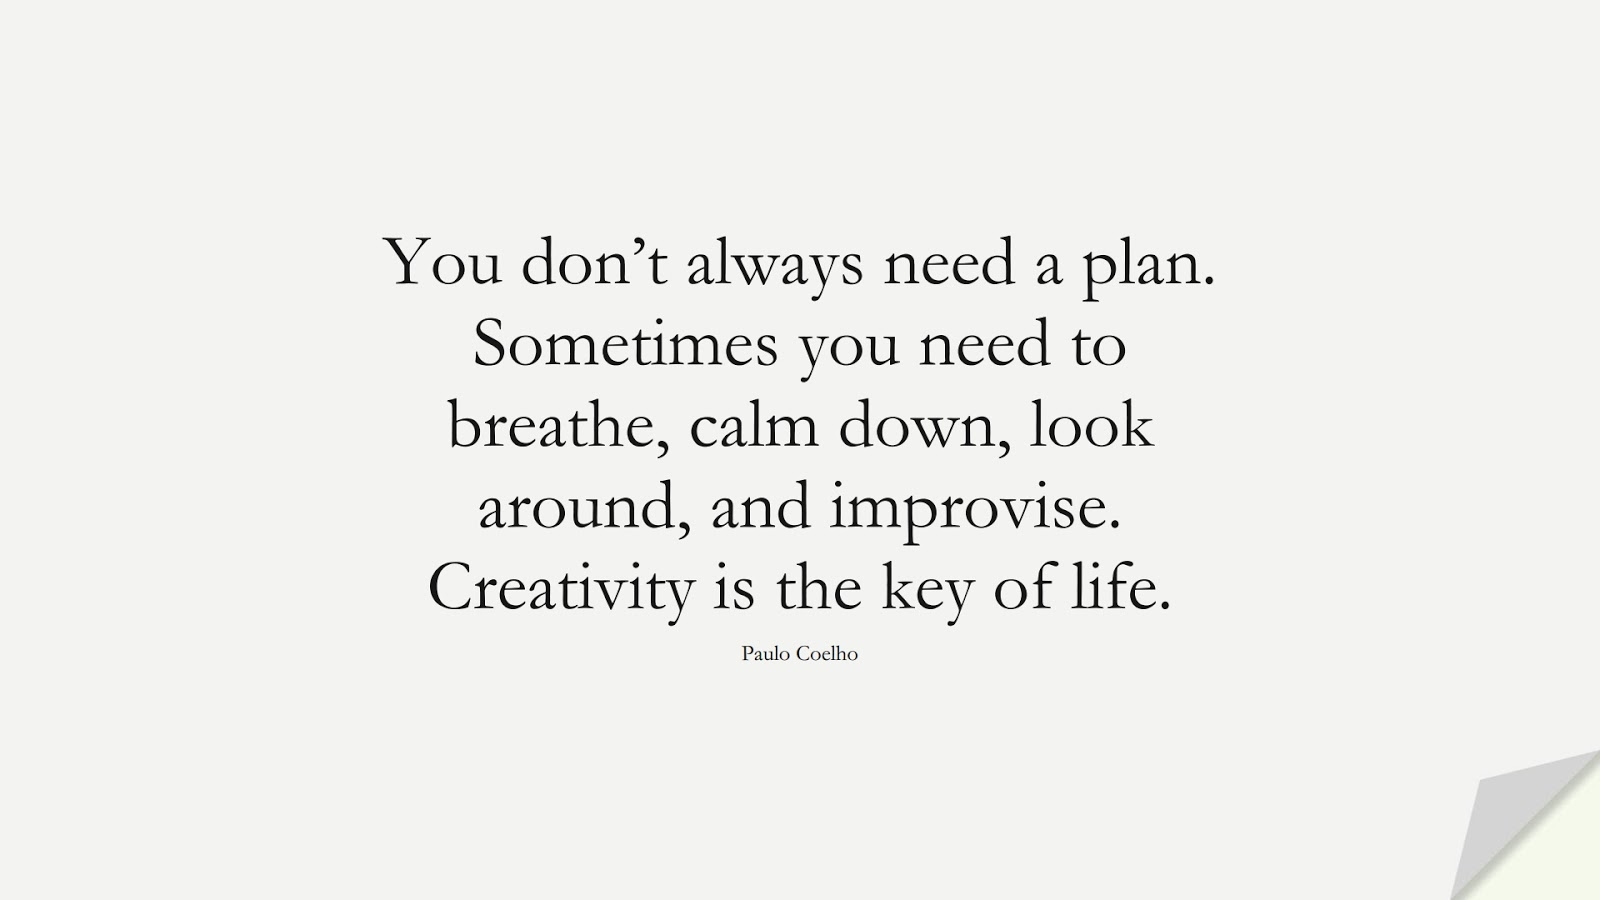 You don't always need a plan. Sometimes you need to breathe, calm down, look around, and improvise. Creativity is the key of life. (Paulo Coelho);  #CalmQuotes